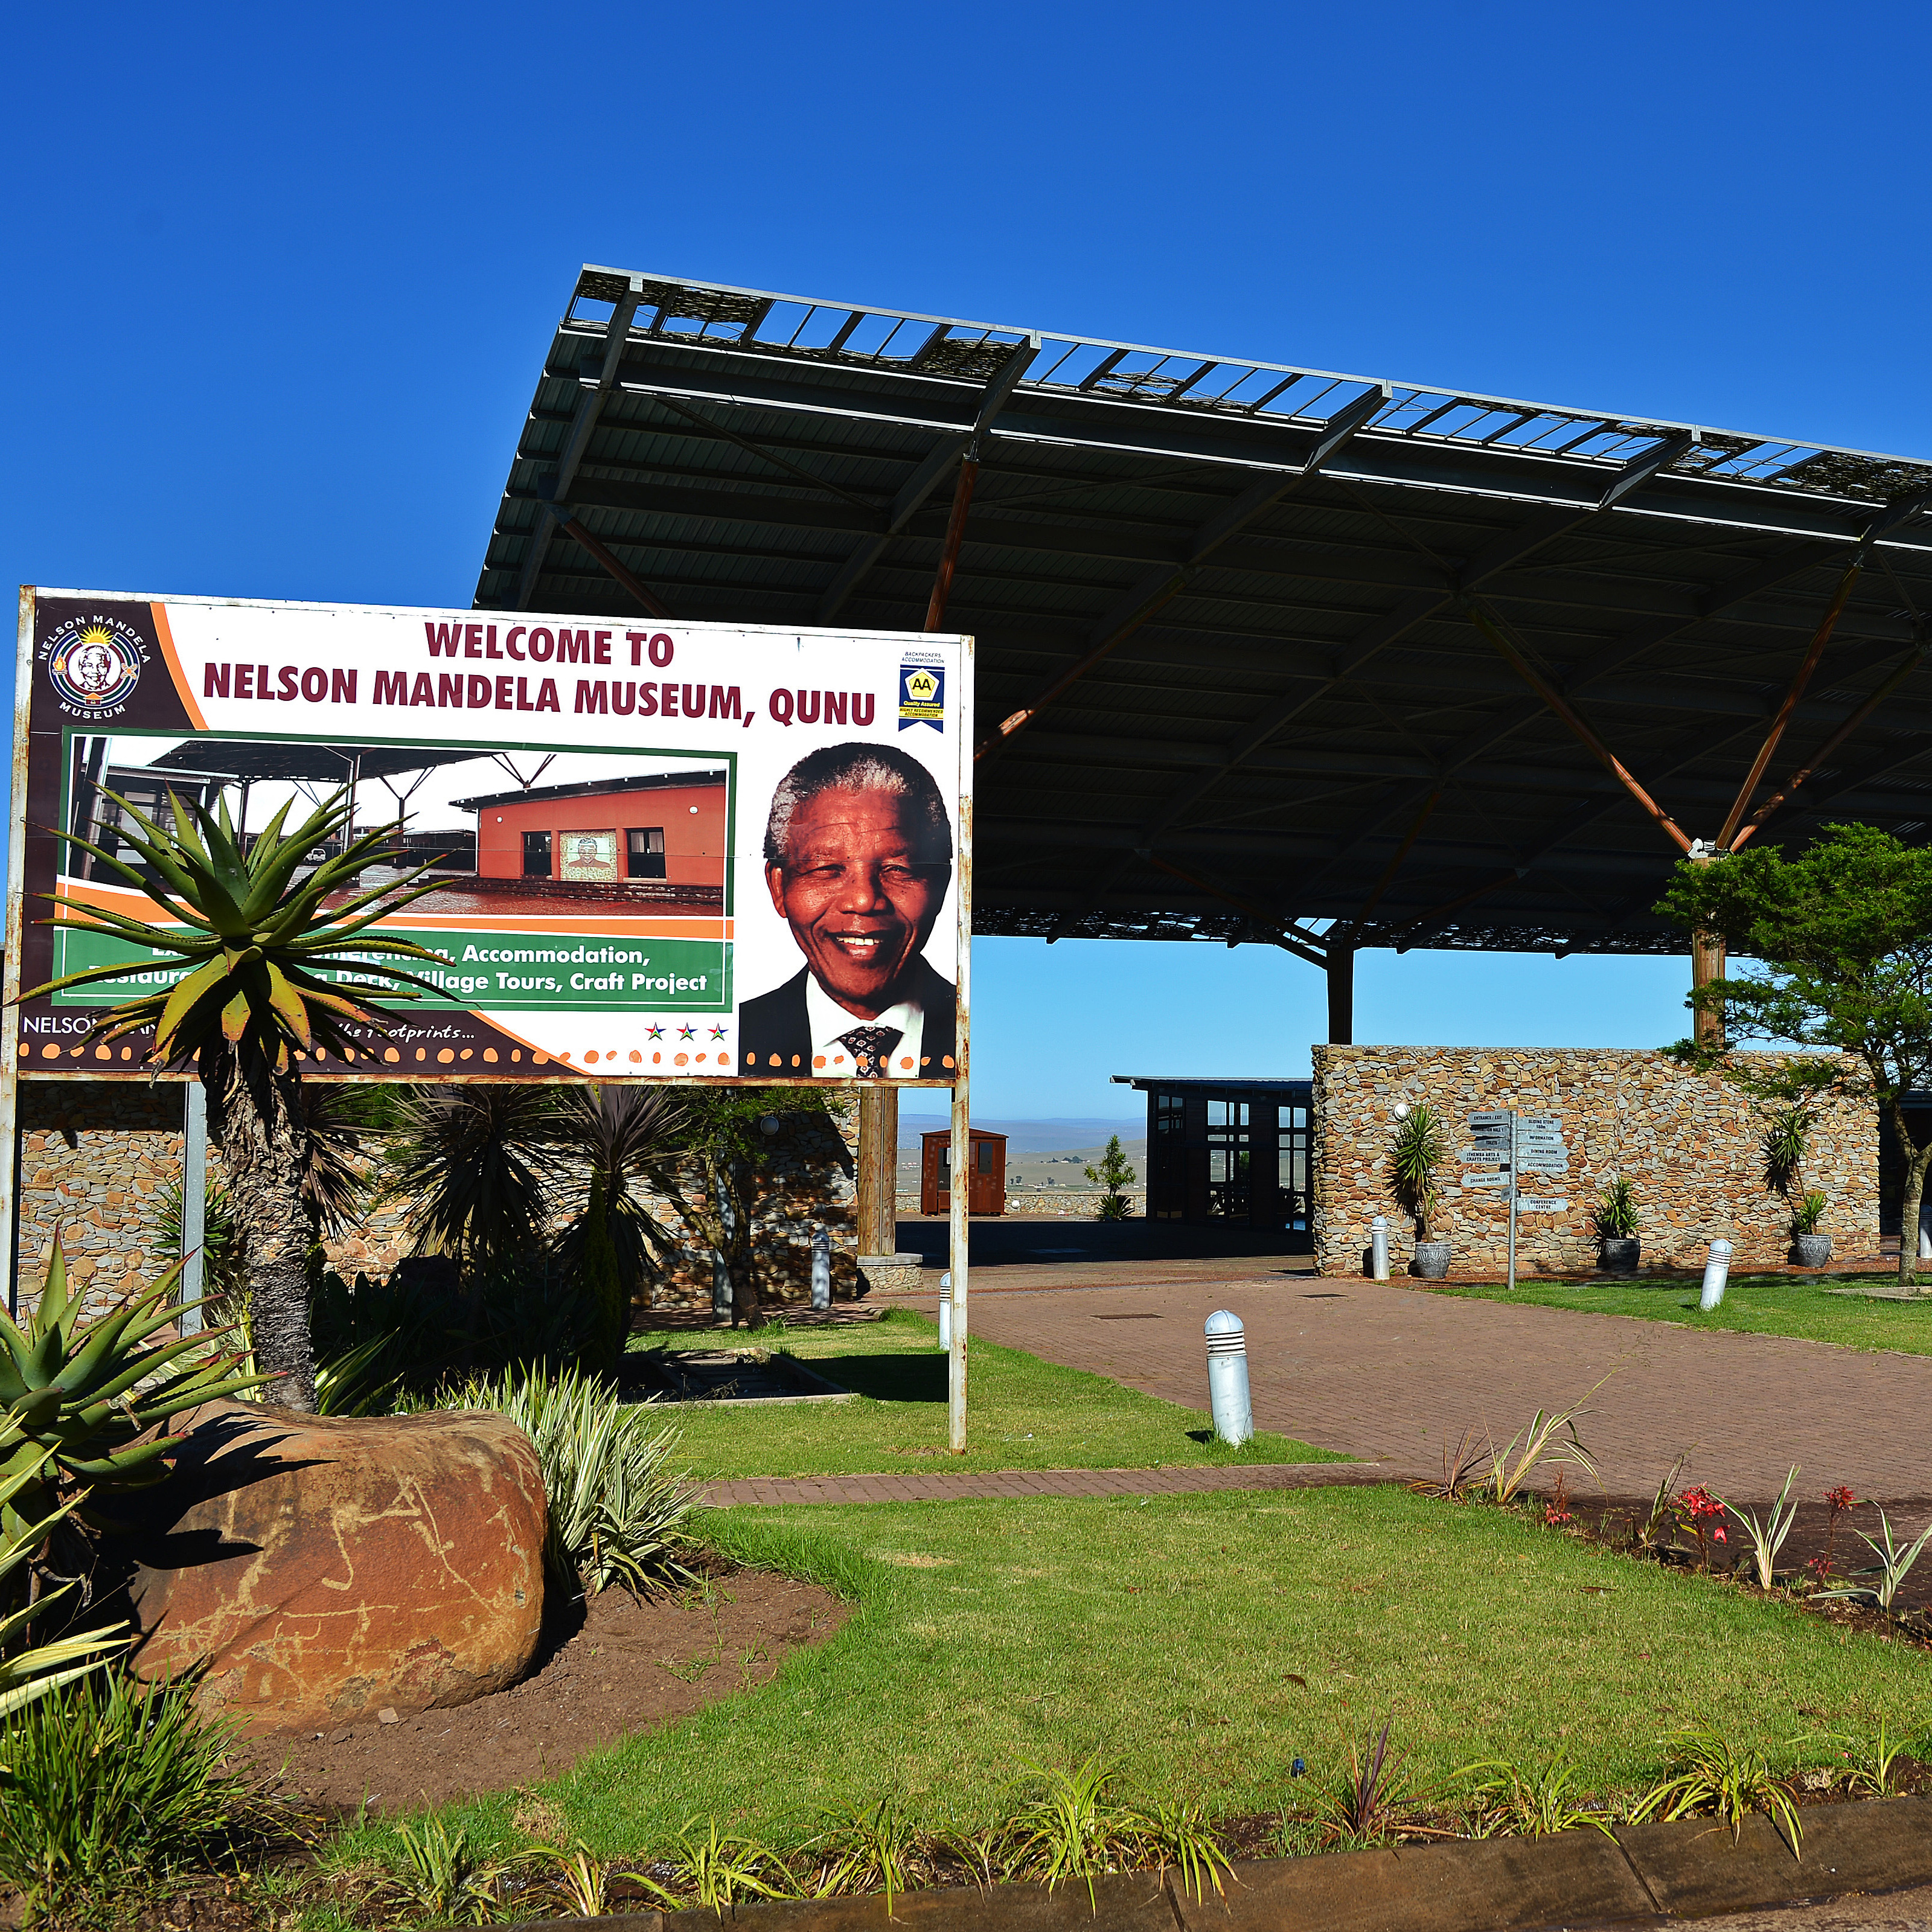 The small Mandela museum, built in 2010, is one of only a handful of clues that the beloved leader hailed from Qunu.